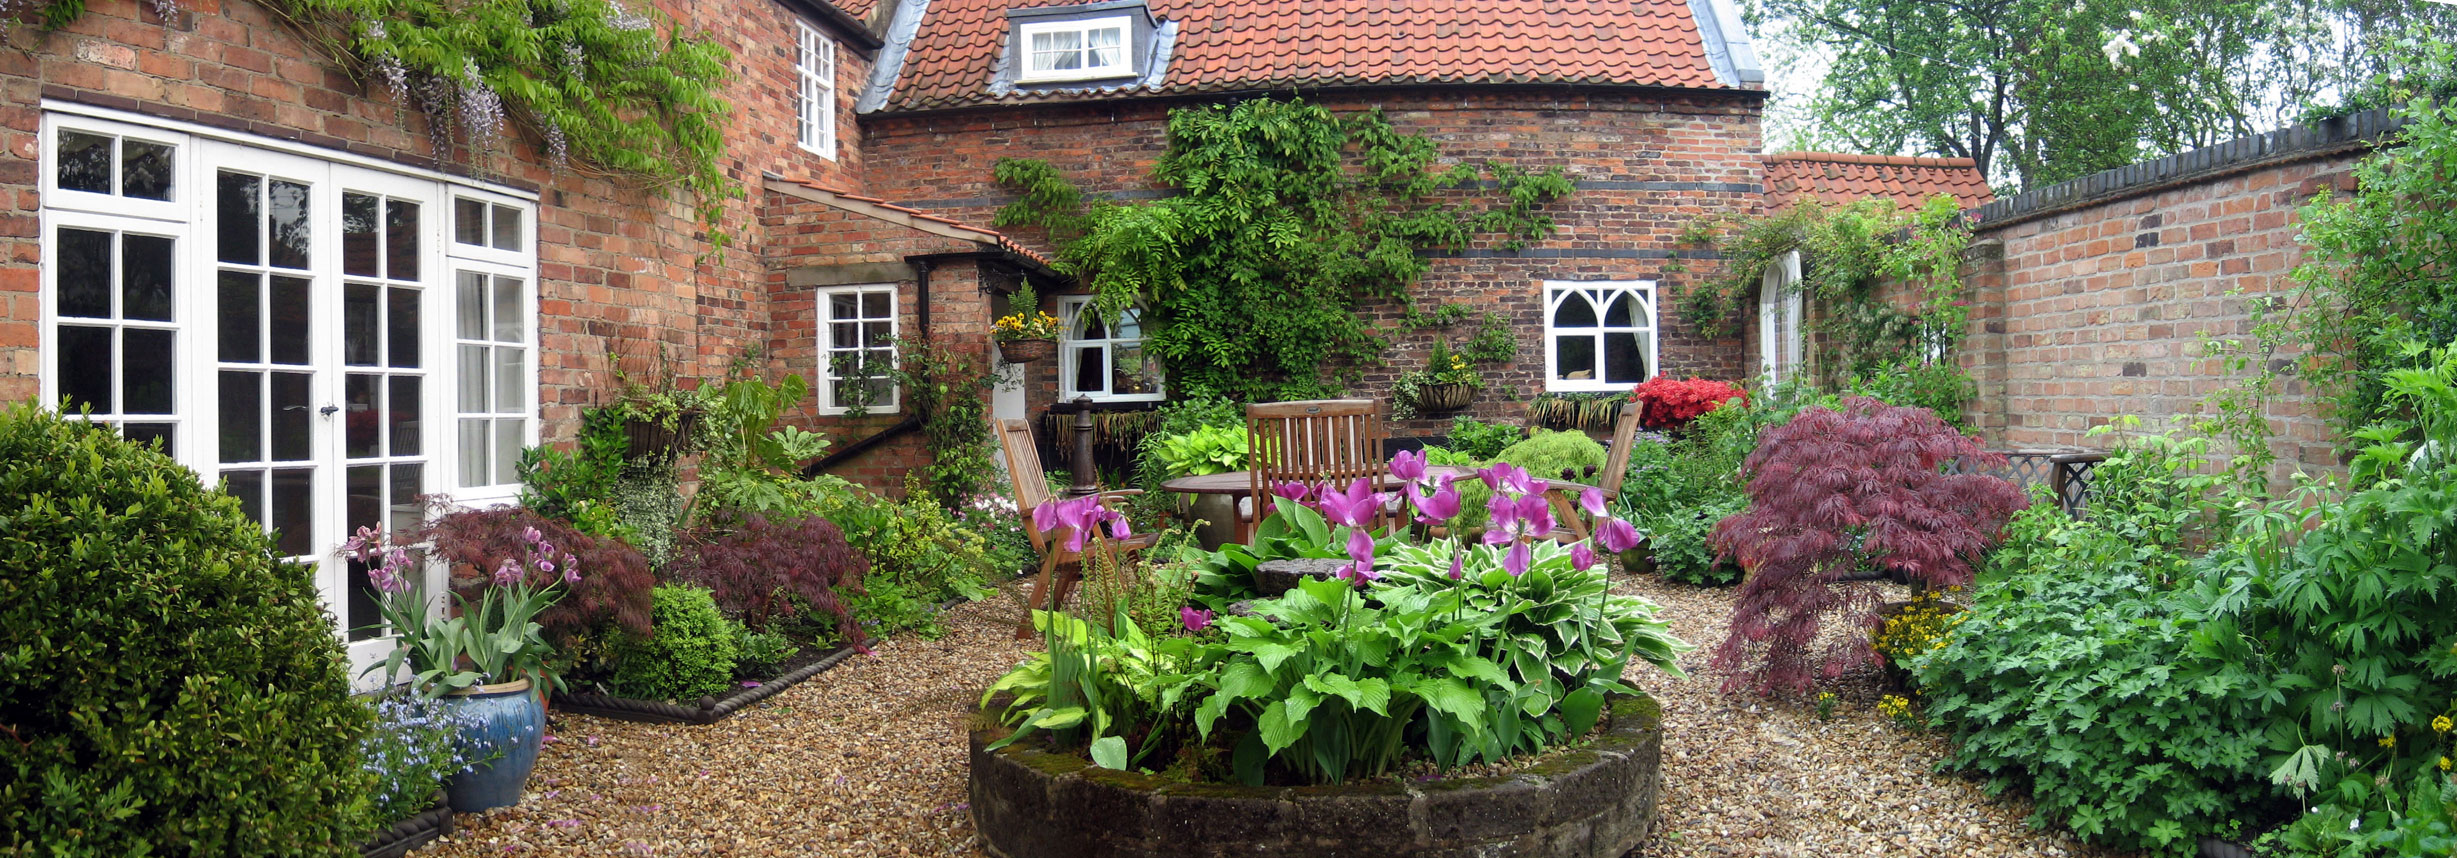 Traditional courtyard garden design style and planting for Small garden courtyard designs